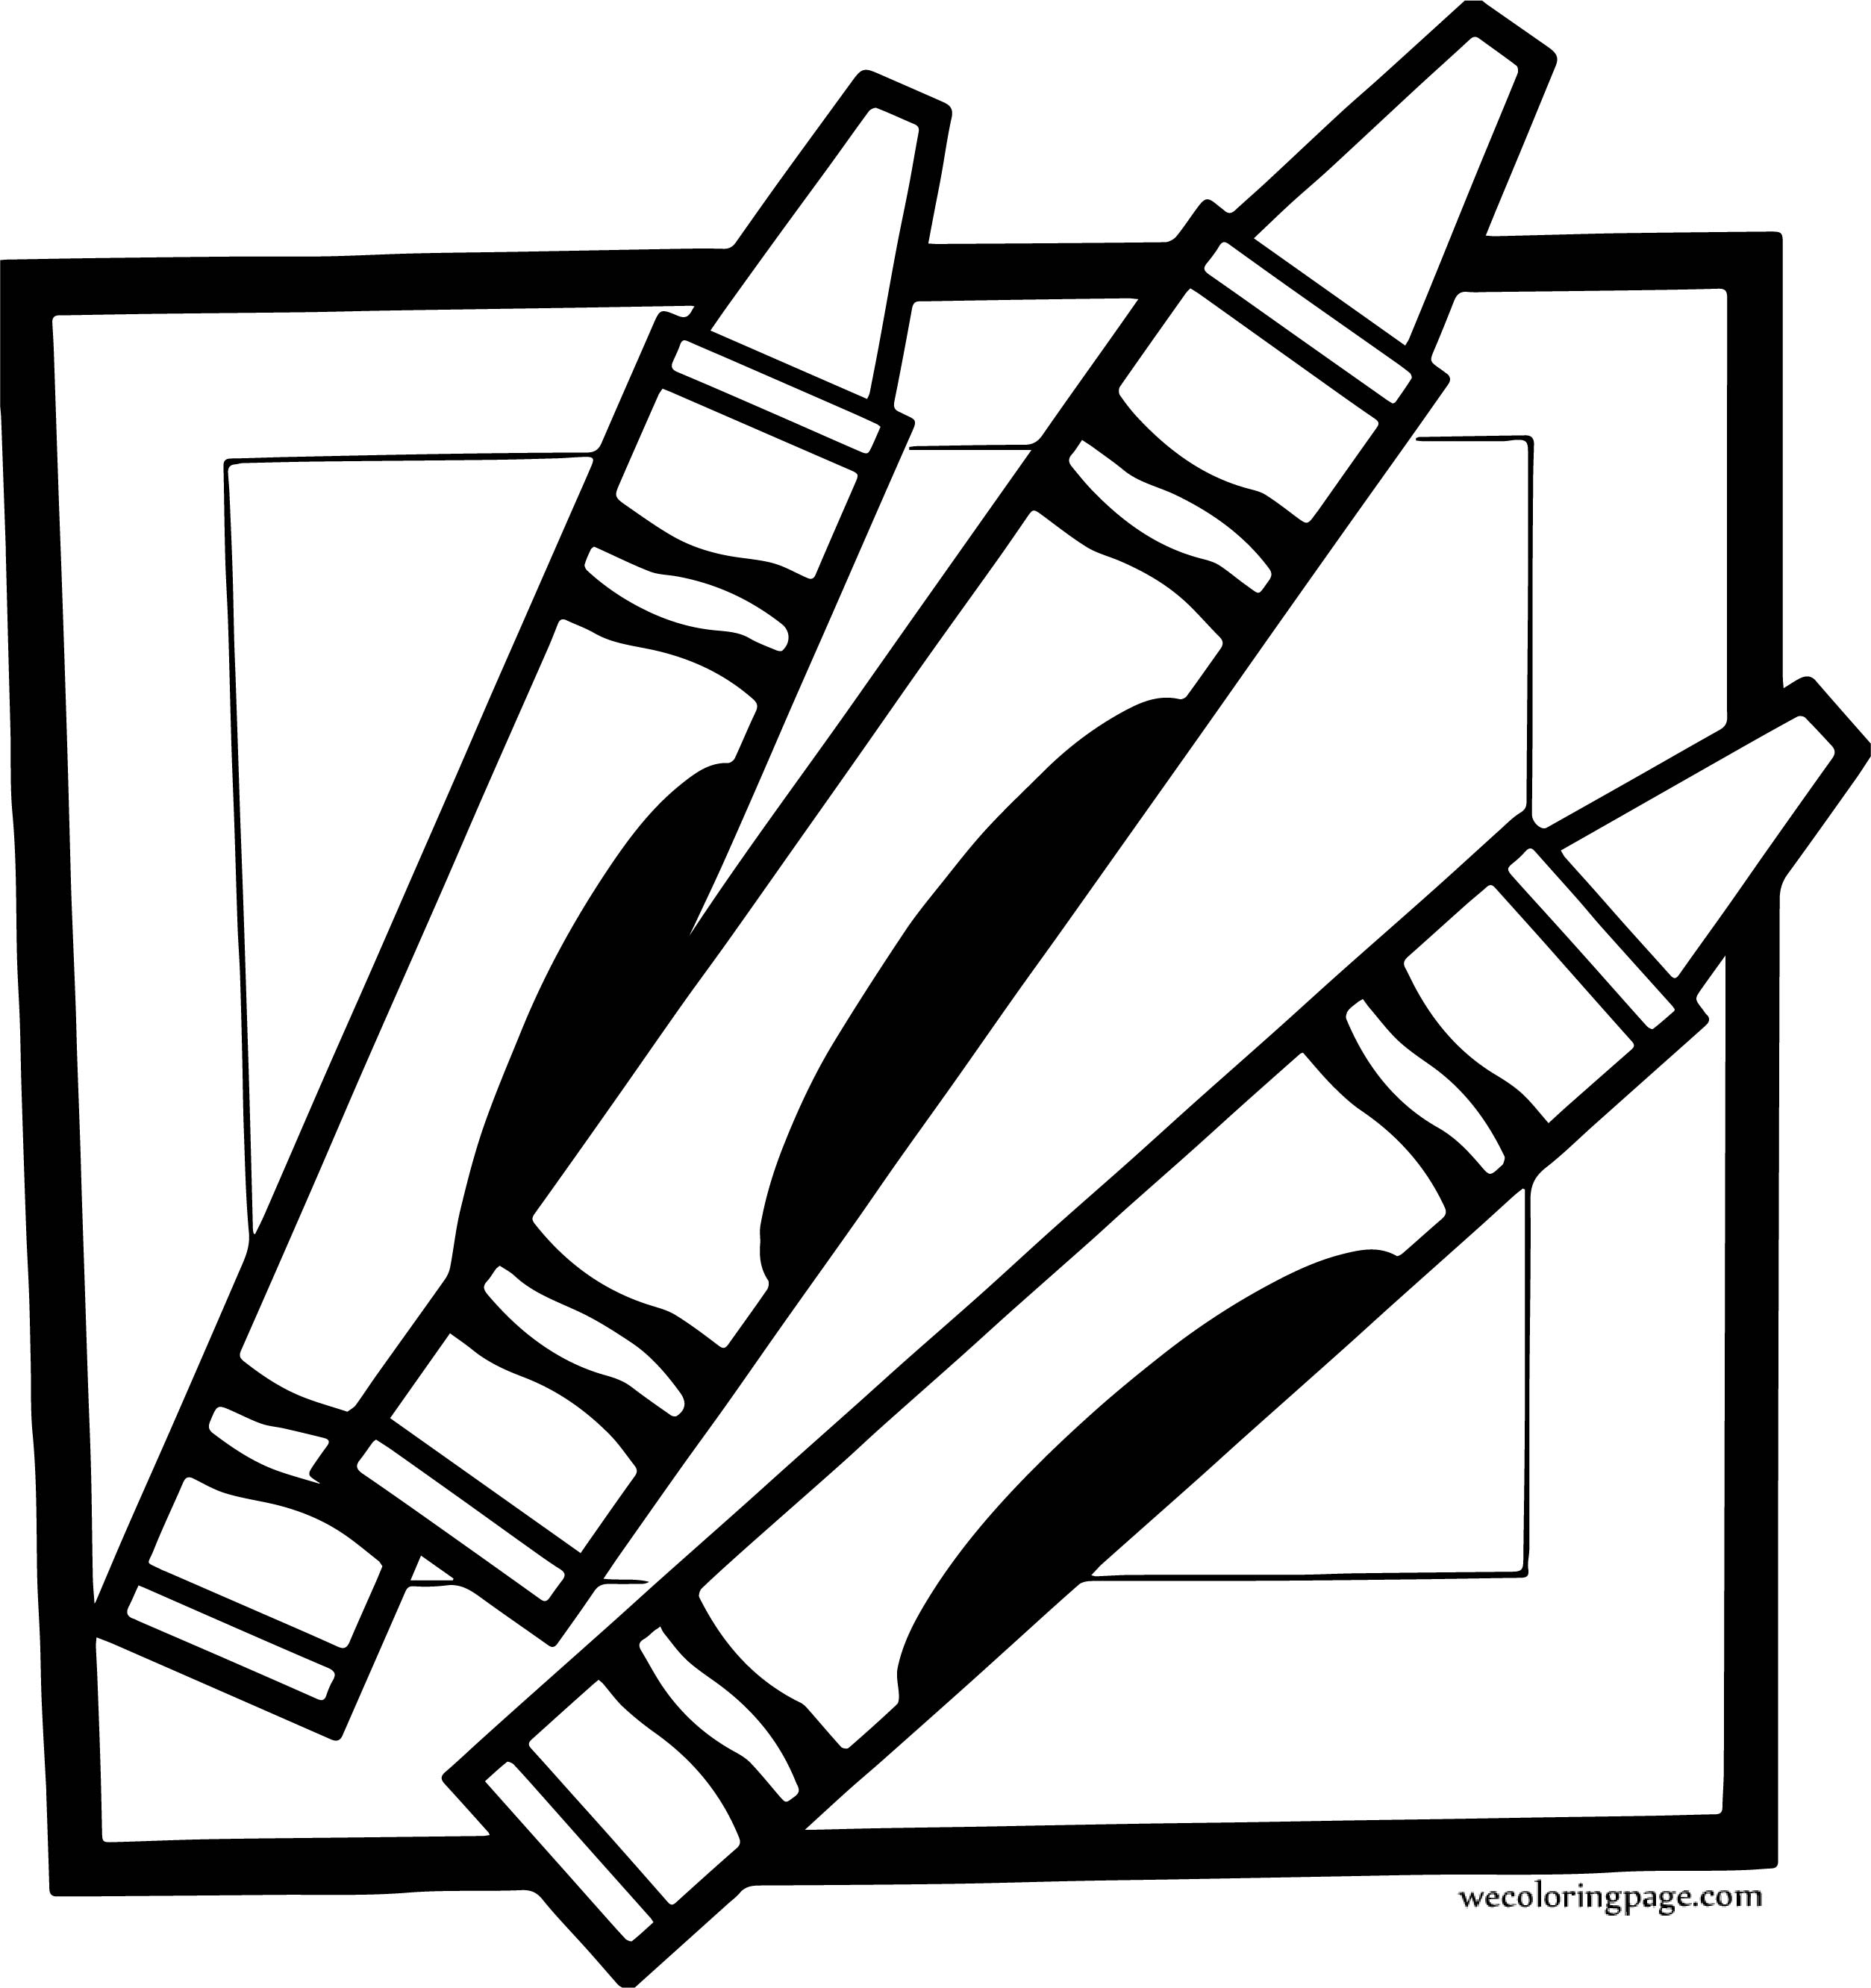 Crayon Pen Picture Border Coloring Page